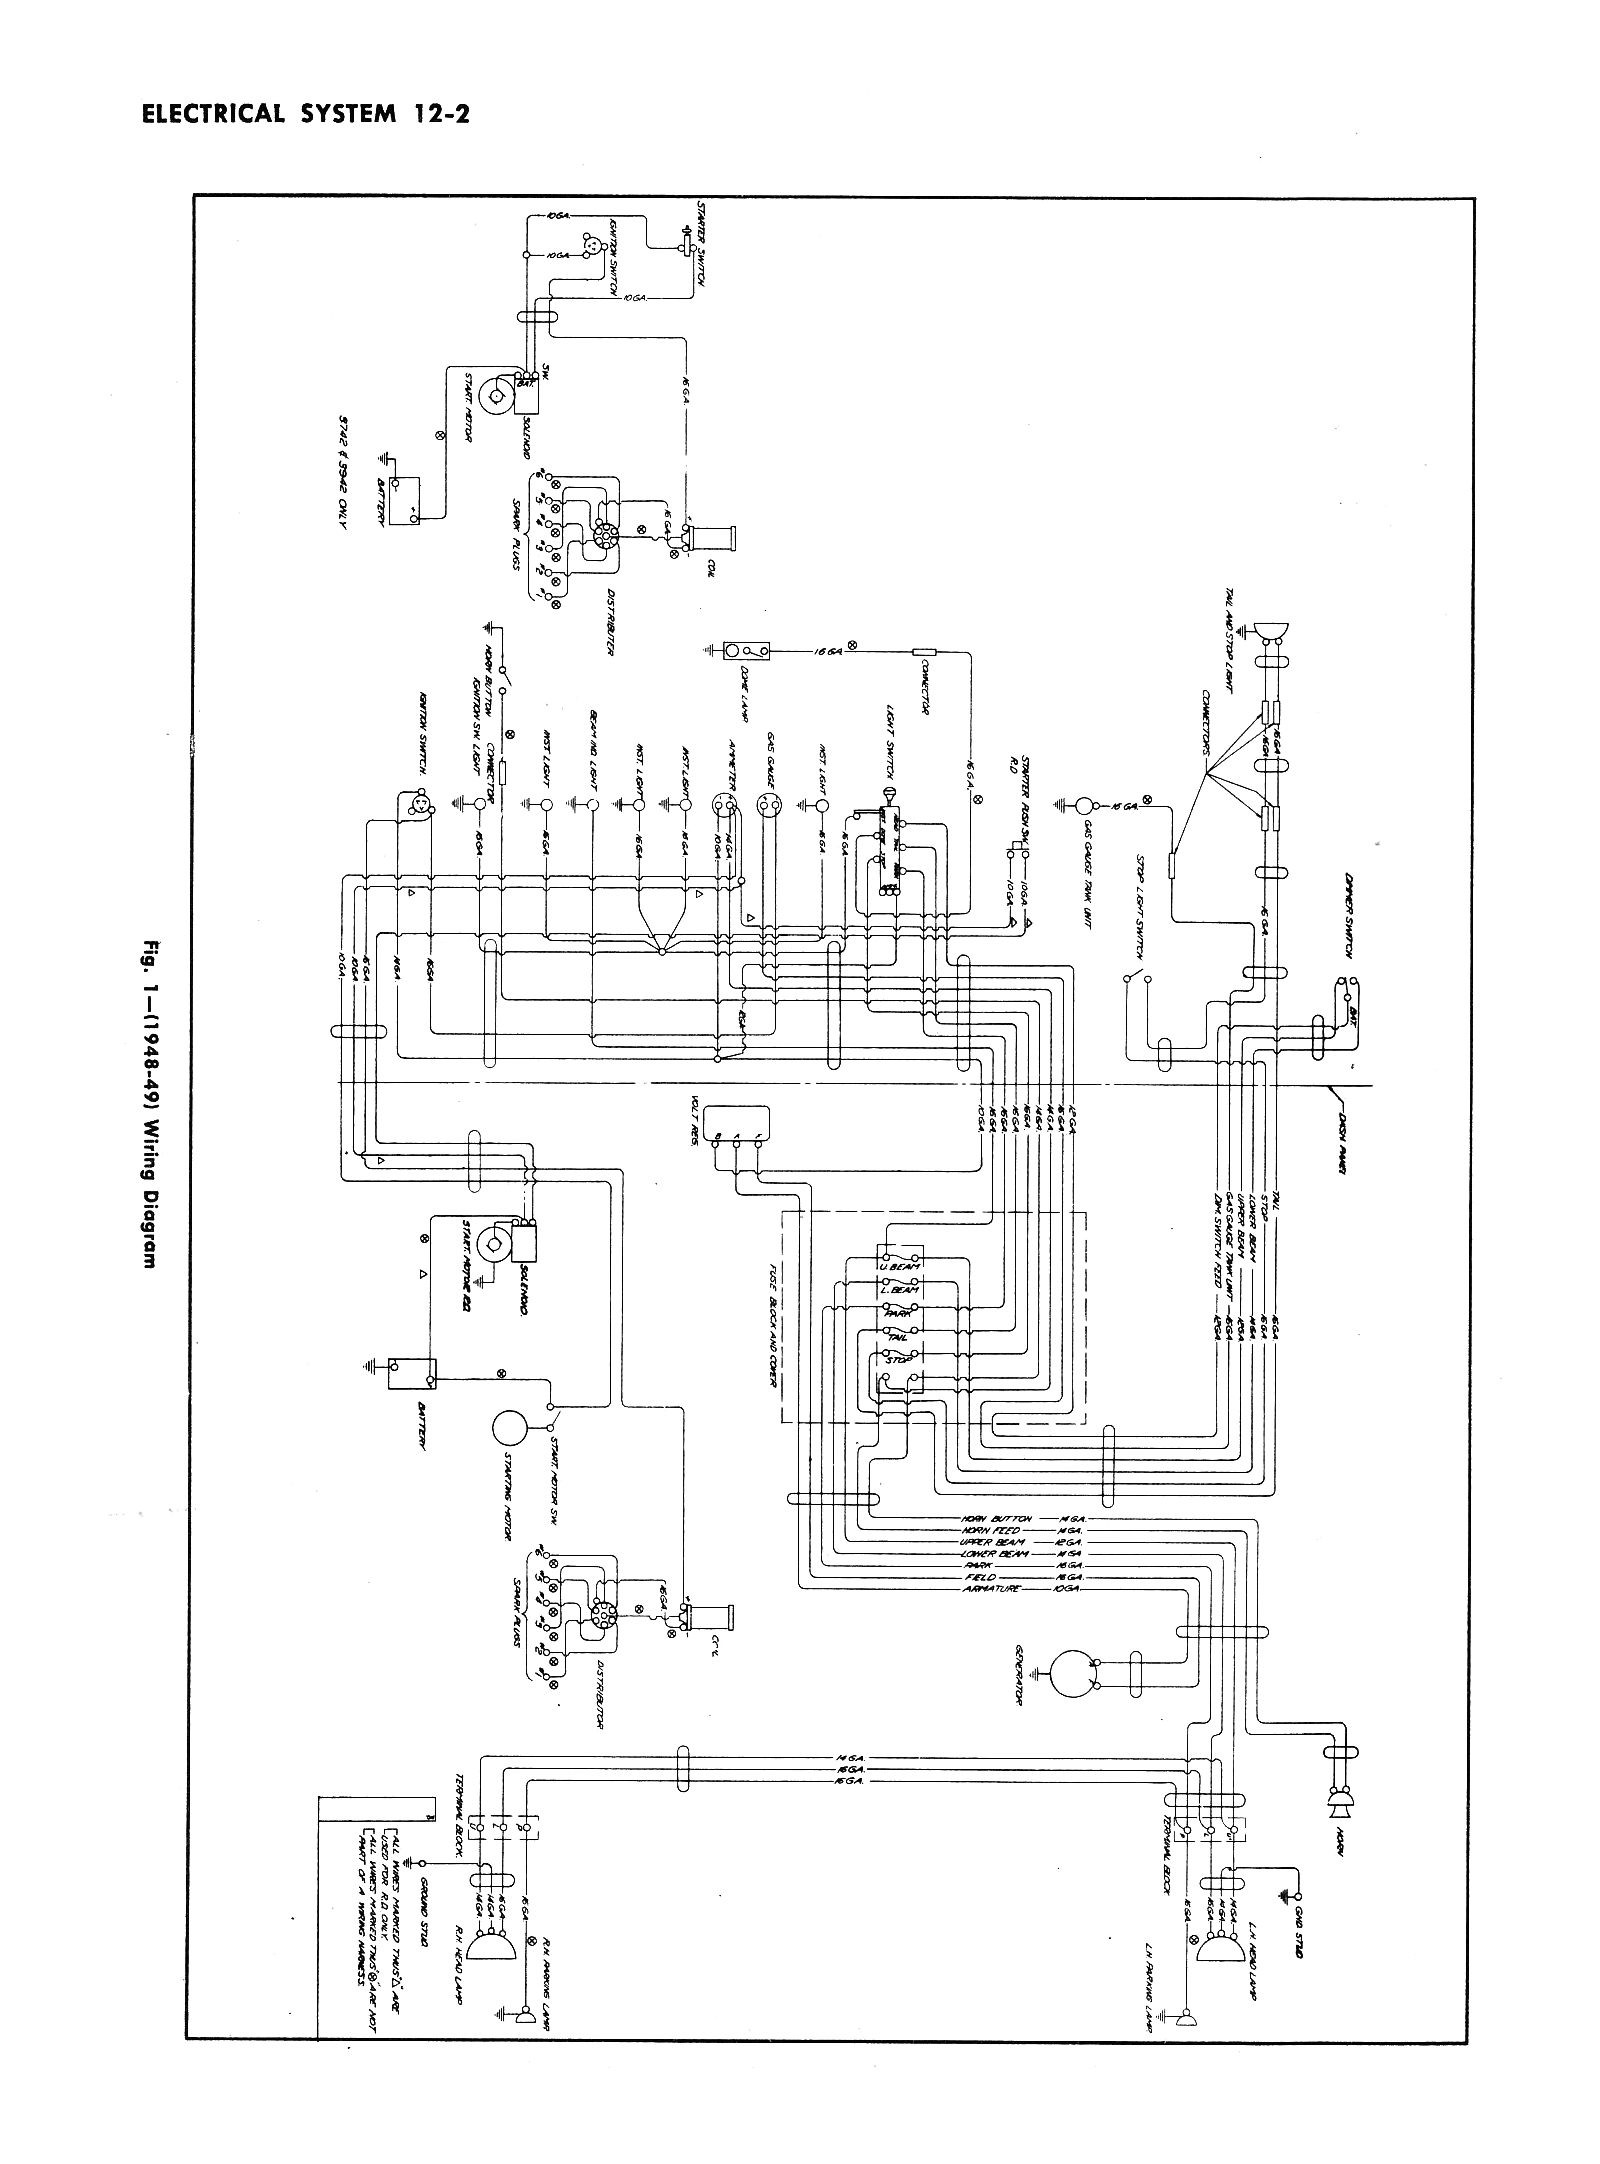 2006 Scion Xa Headlight Wiring Diagram together with Honda Odyssey Front Fender Diagram as well Malibu Evap Canister Purge Valve Solenoid Location likewise Honda Civic Fuse Box Diagrams 374430 further Scion Xb Factory Radio Wiring Diagram. on 2006 scion tc fuse box